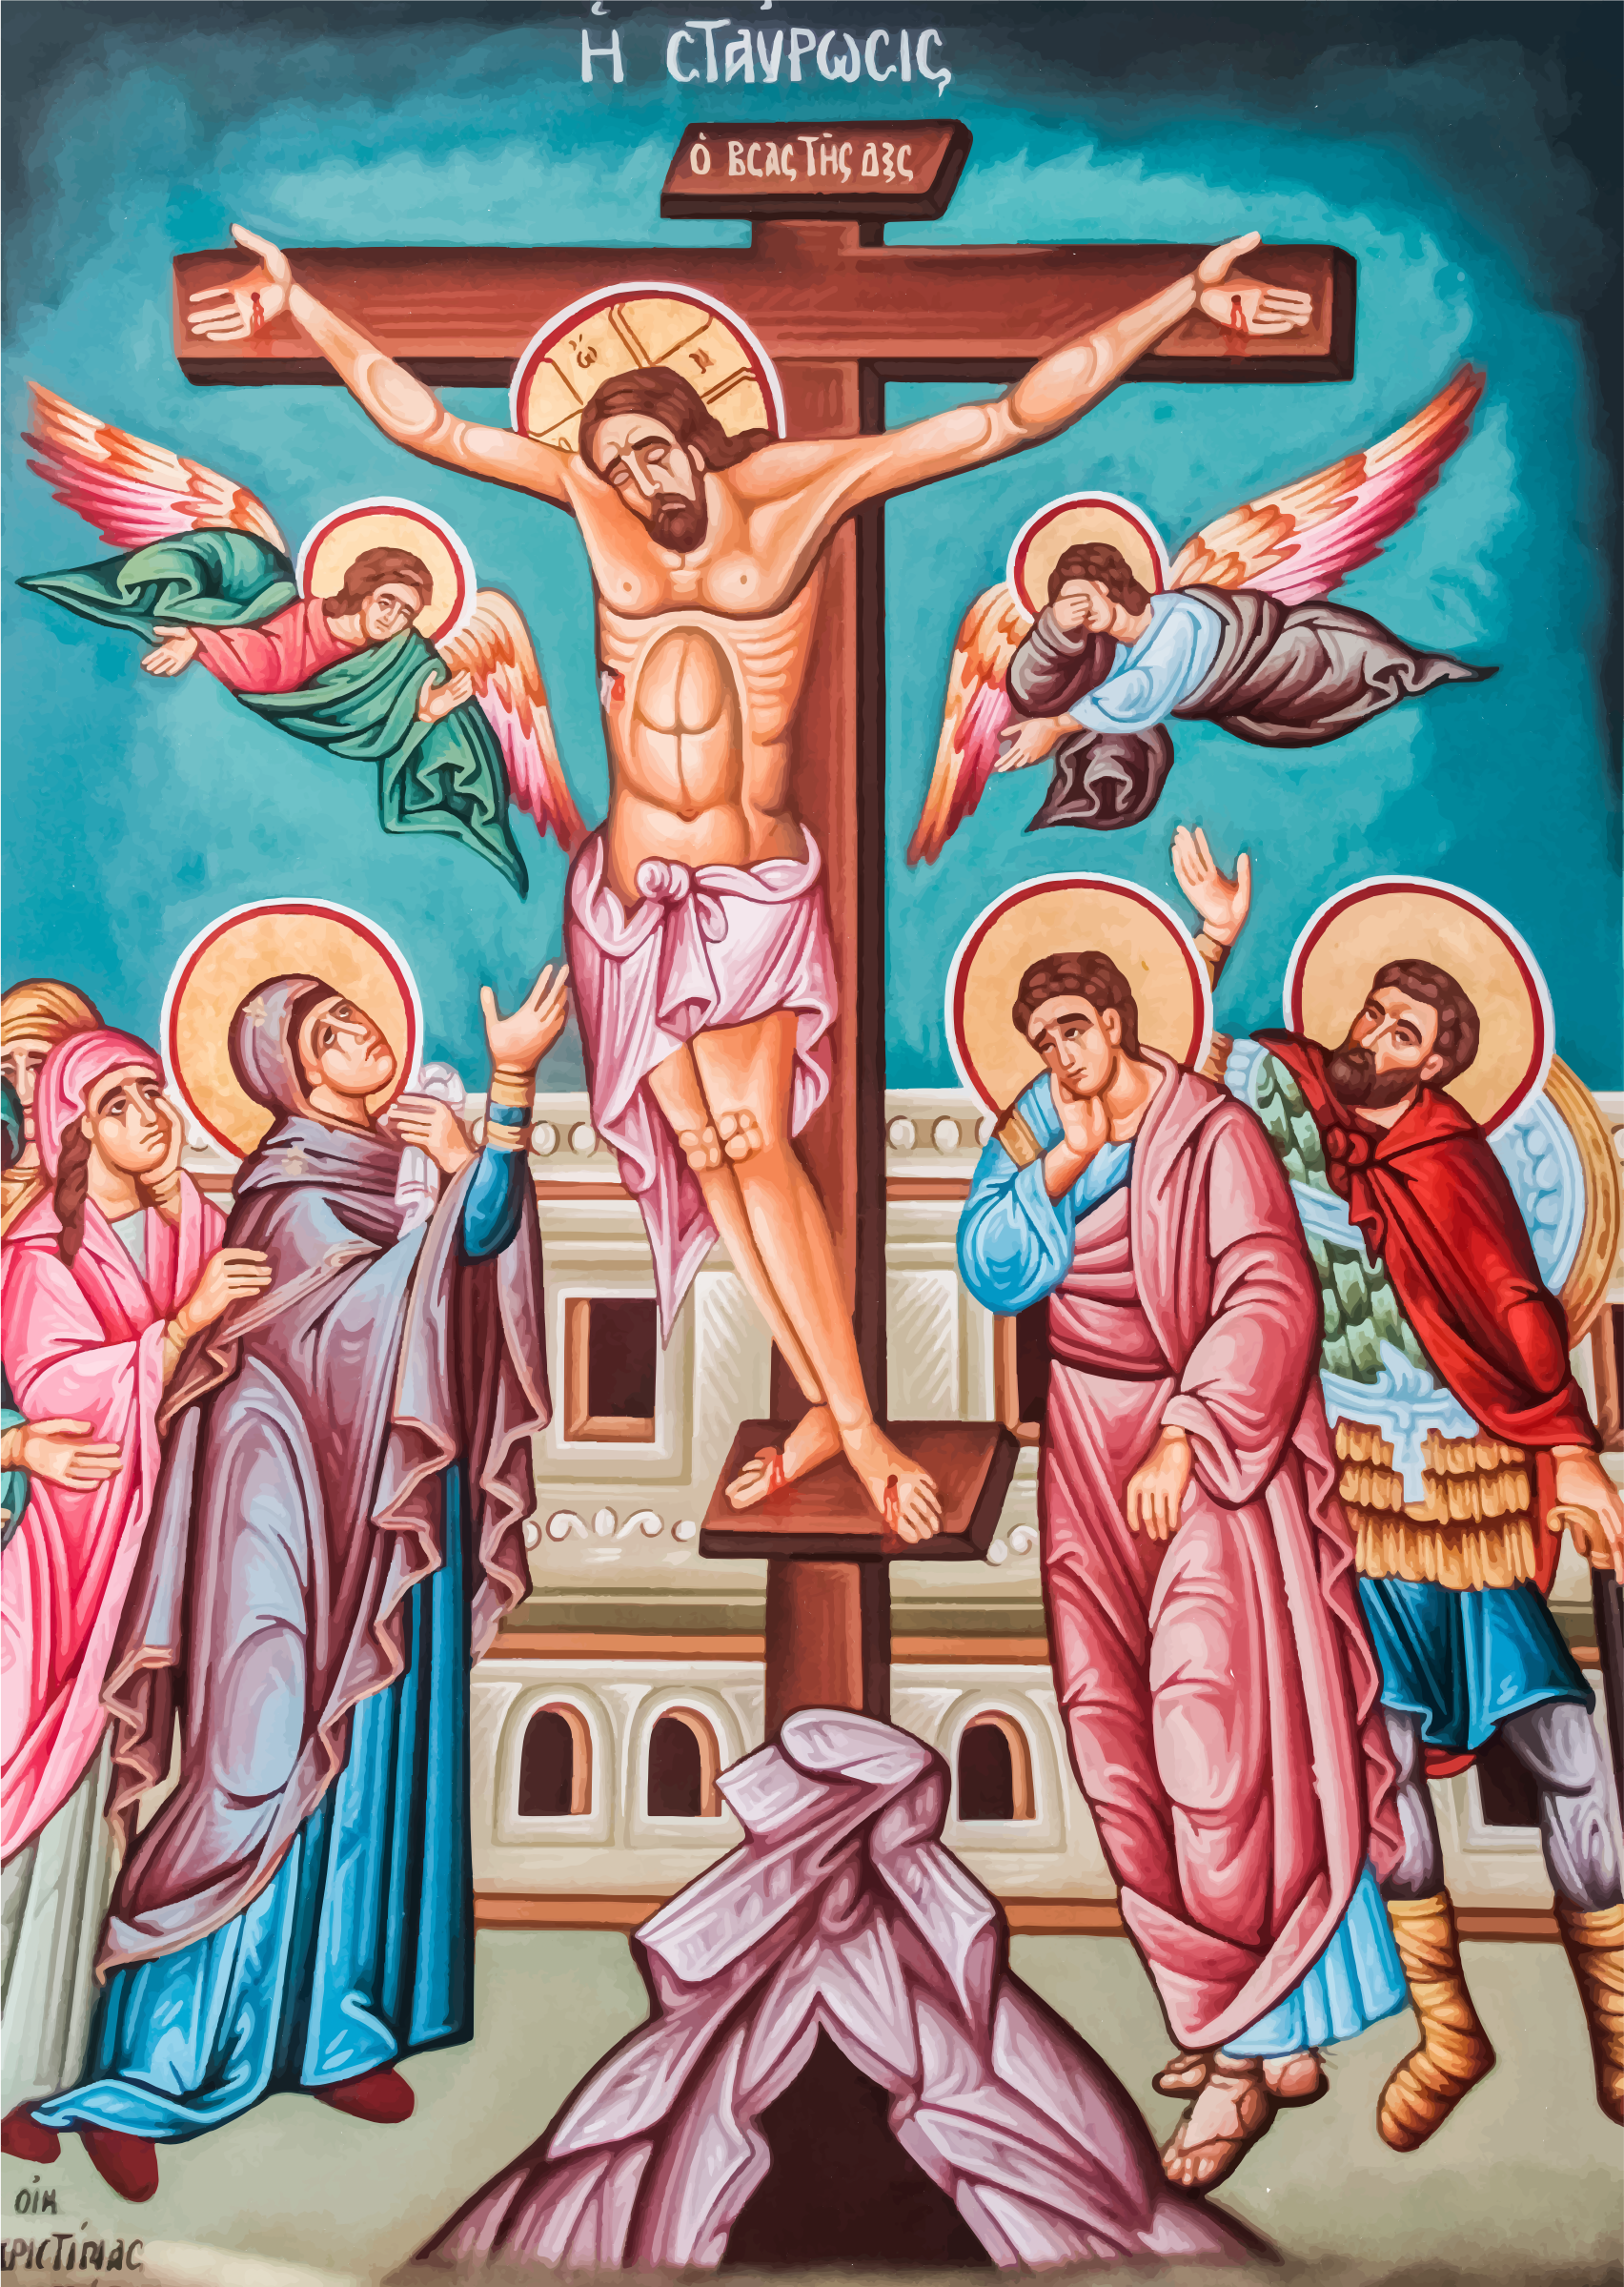 Clipart greek orthodox crucifixion of jesus christ mural greek orthodox crucifixion of jesus christ mural biocorpaavc Image collections